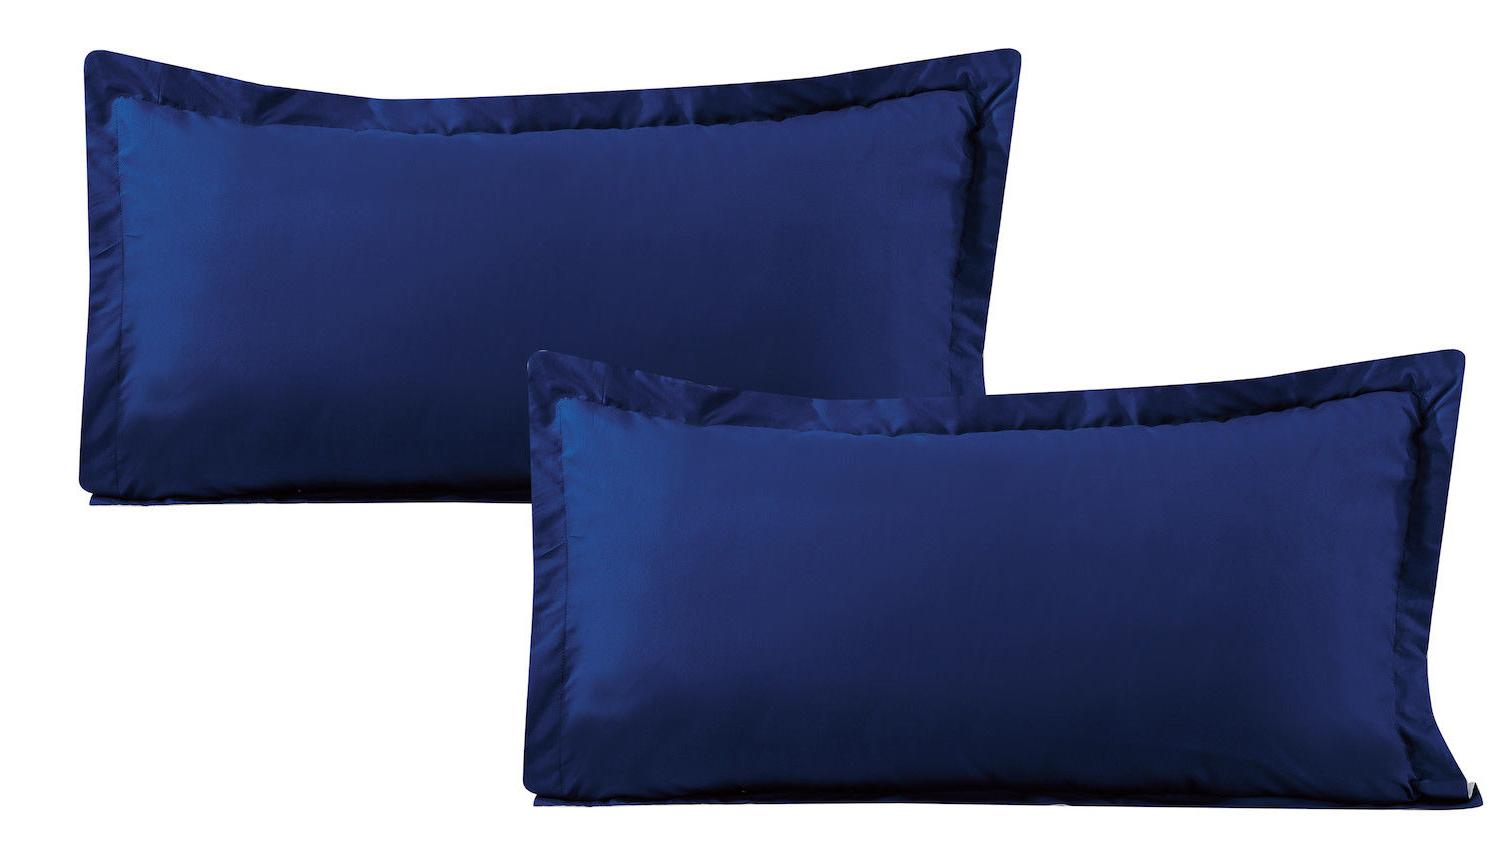 Comforter 8 pcs Soft Navy Blue and King Size